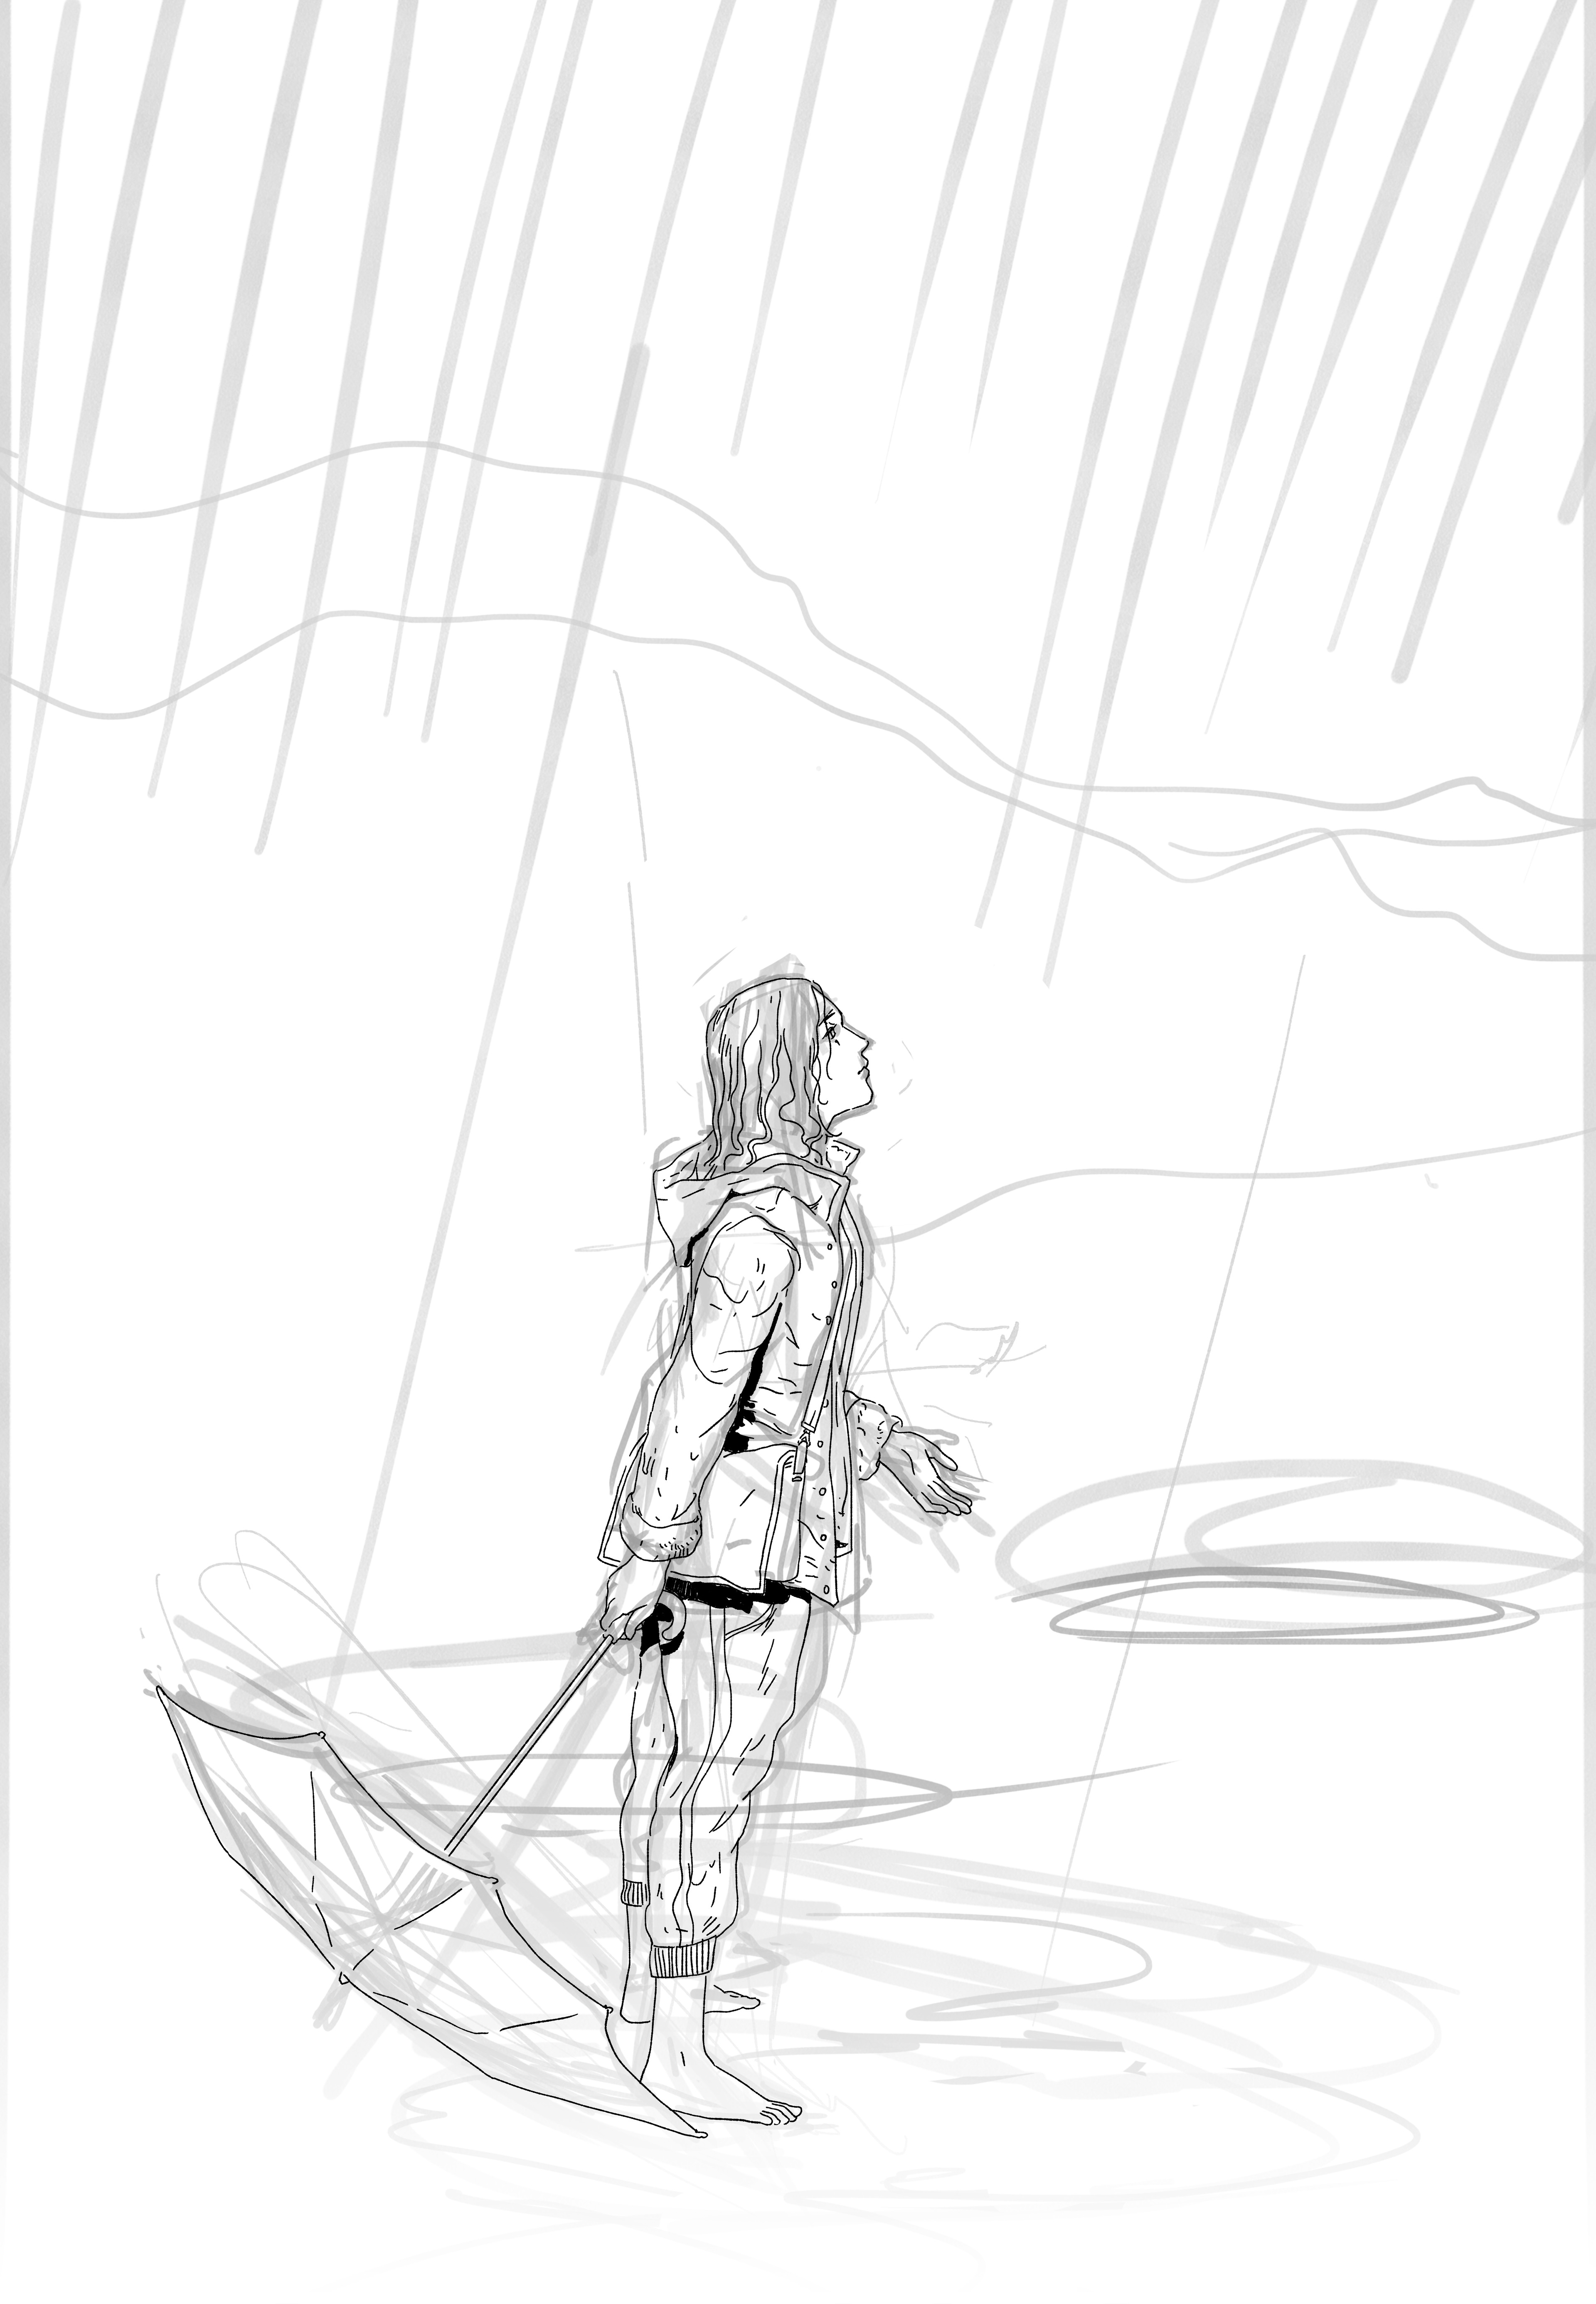 Sketch with lineart